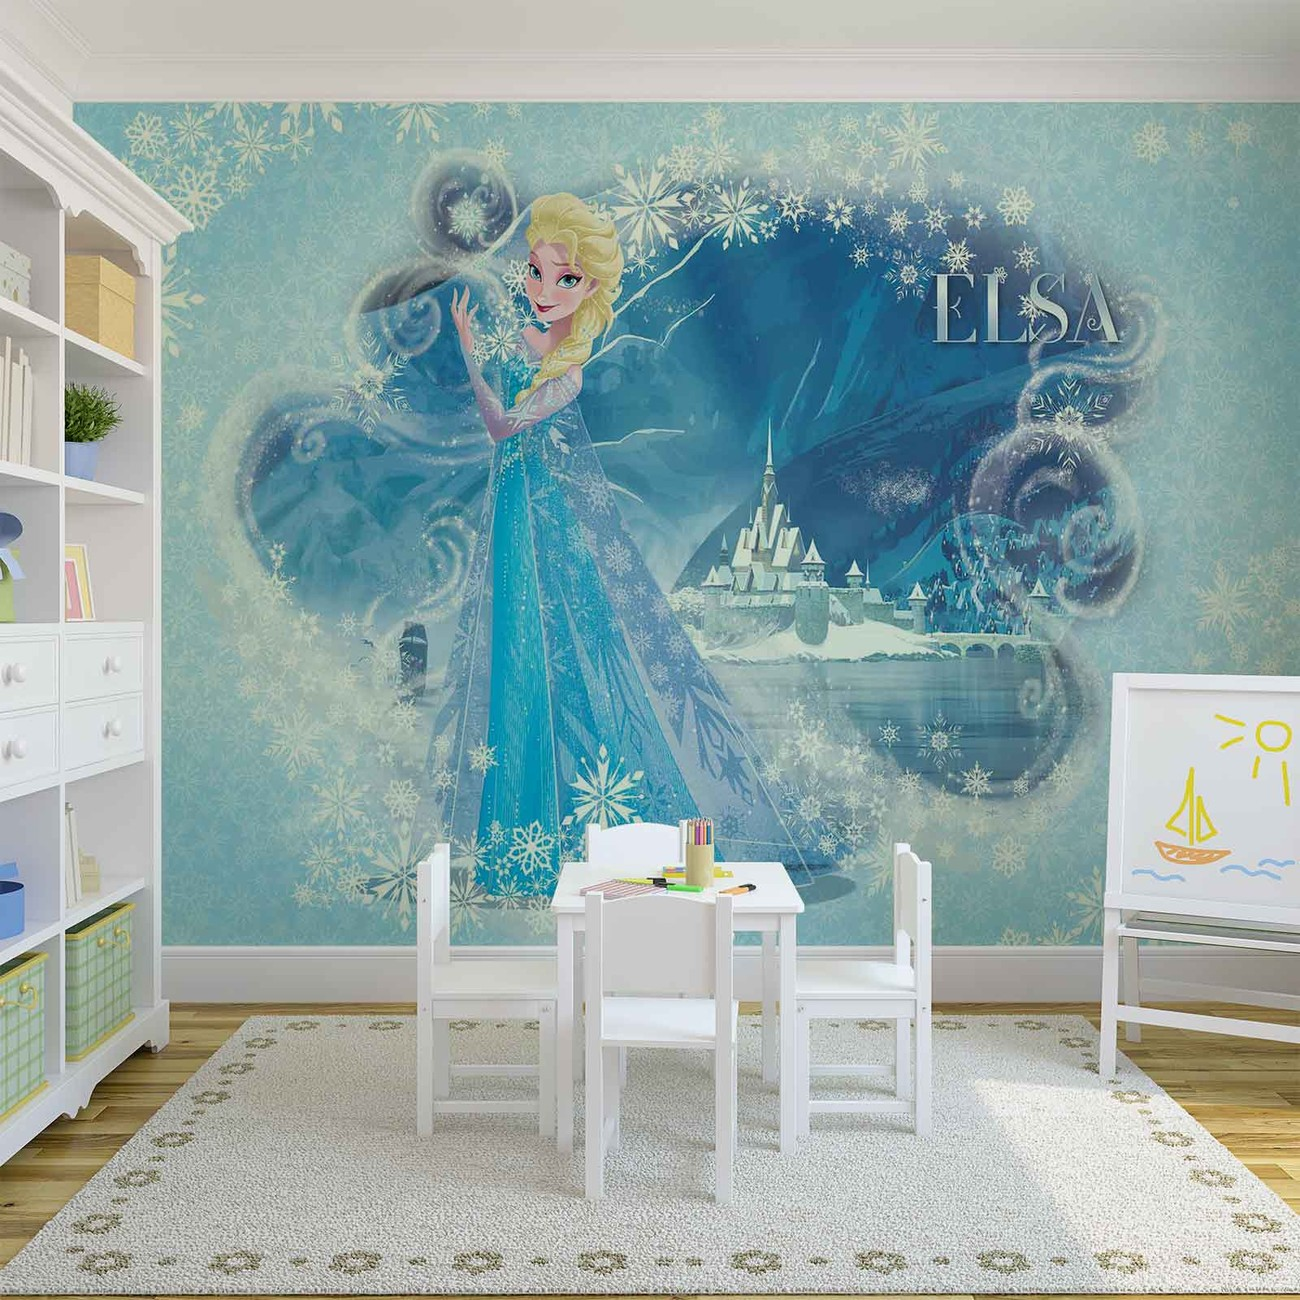 Disney frozen elsa wall paper mural buy at europosters for Art mural wallpaper uk